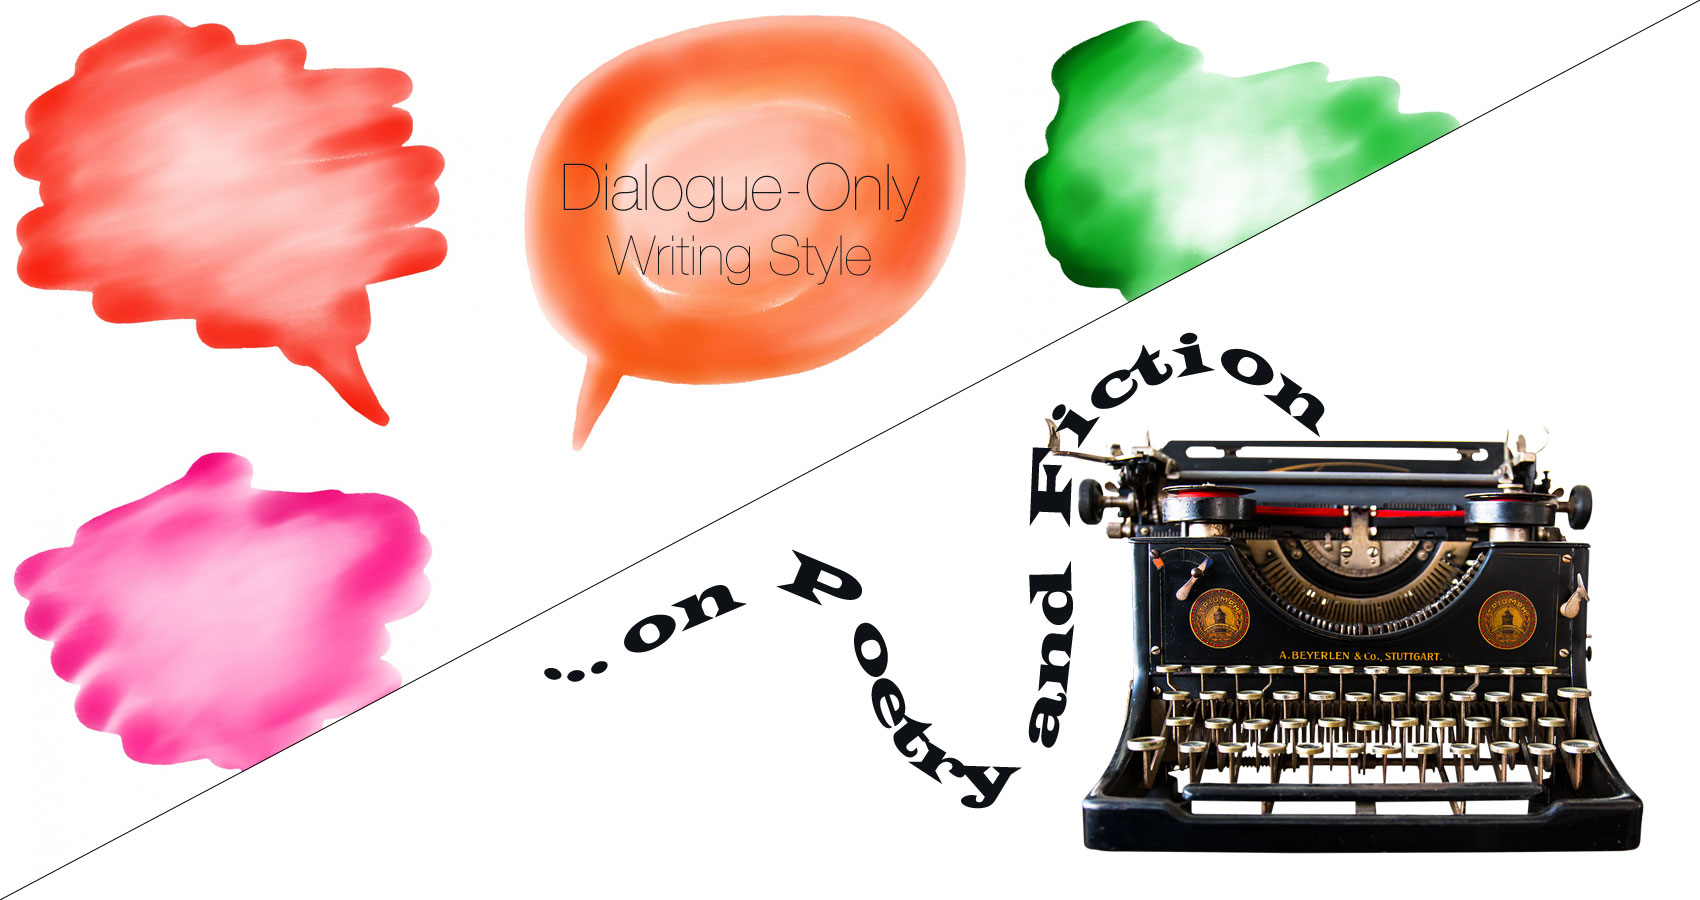 ...on Poetry and Fiction - Dialogue-Only Writing Style written by Phyllis P. Colucci at Spillwords.com